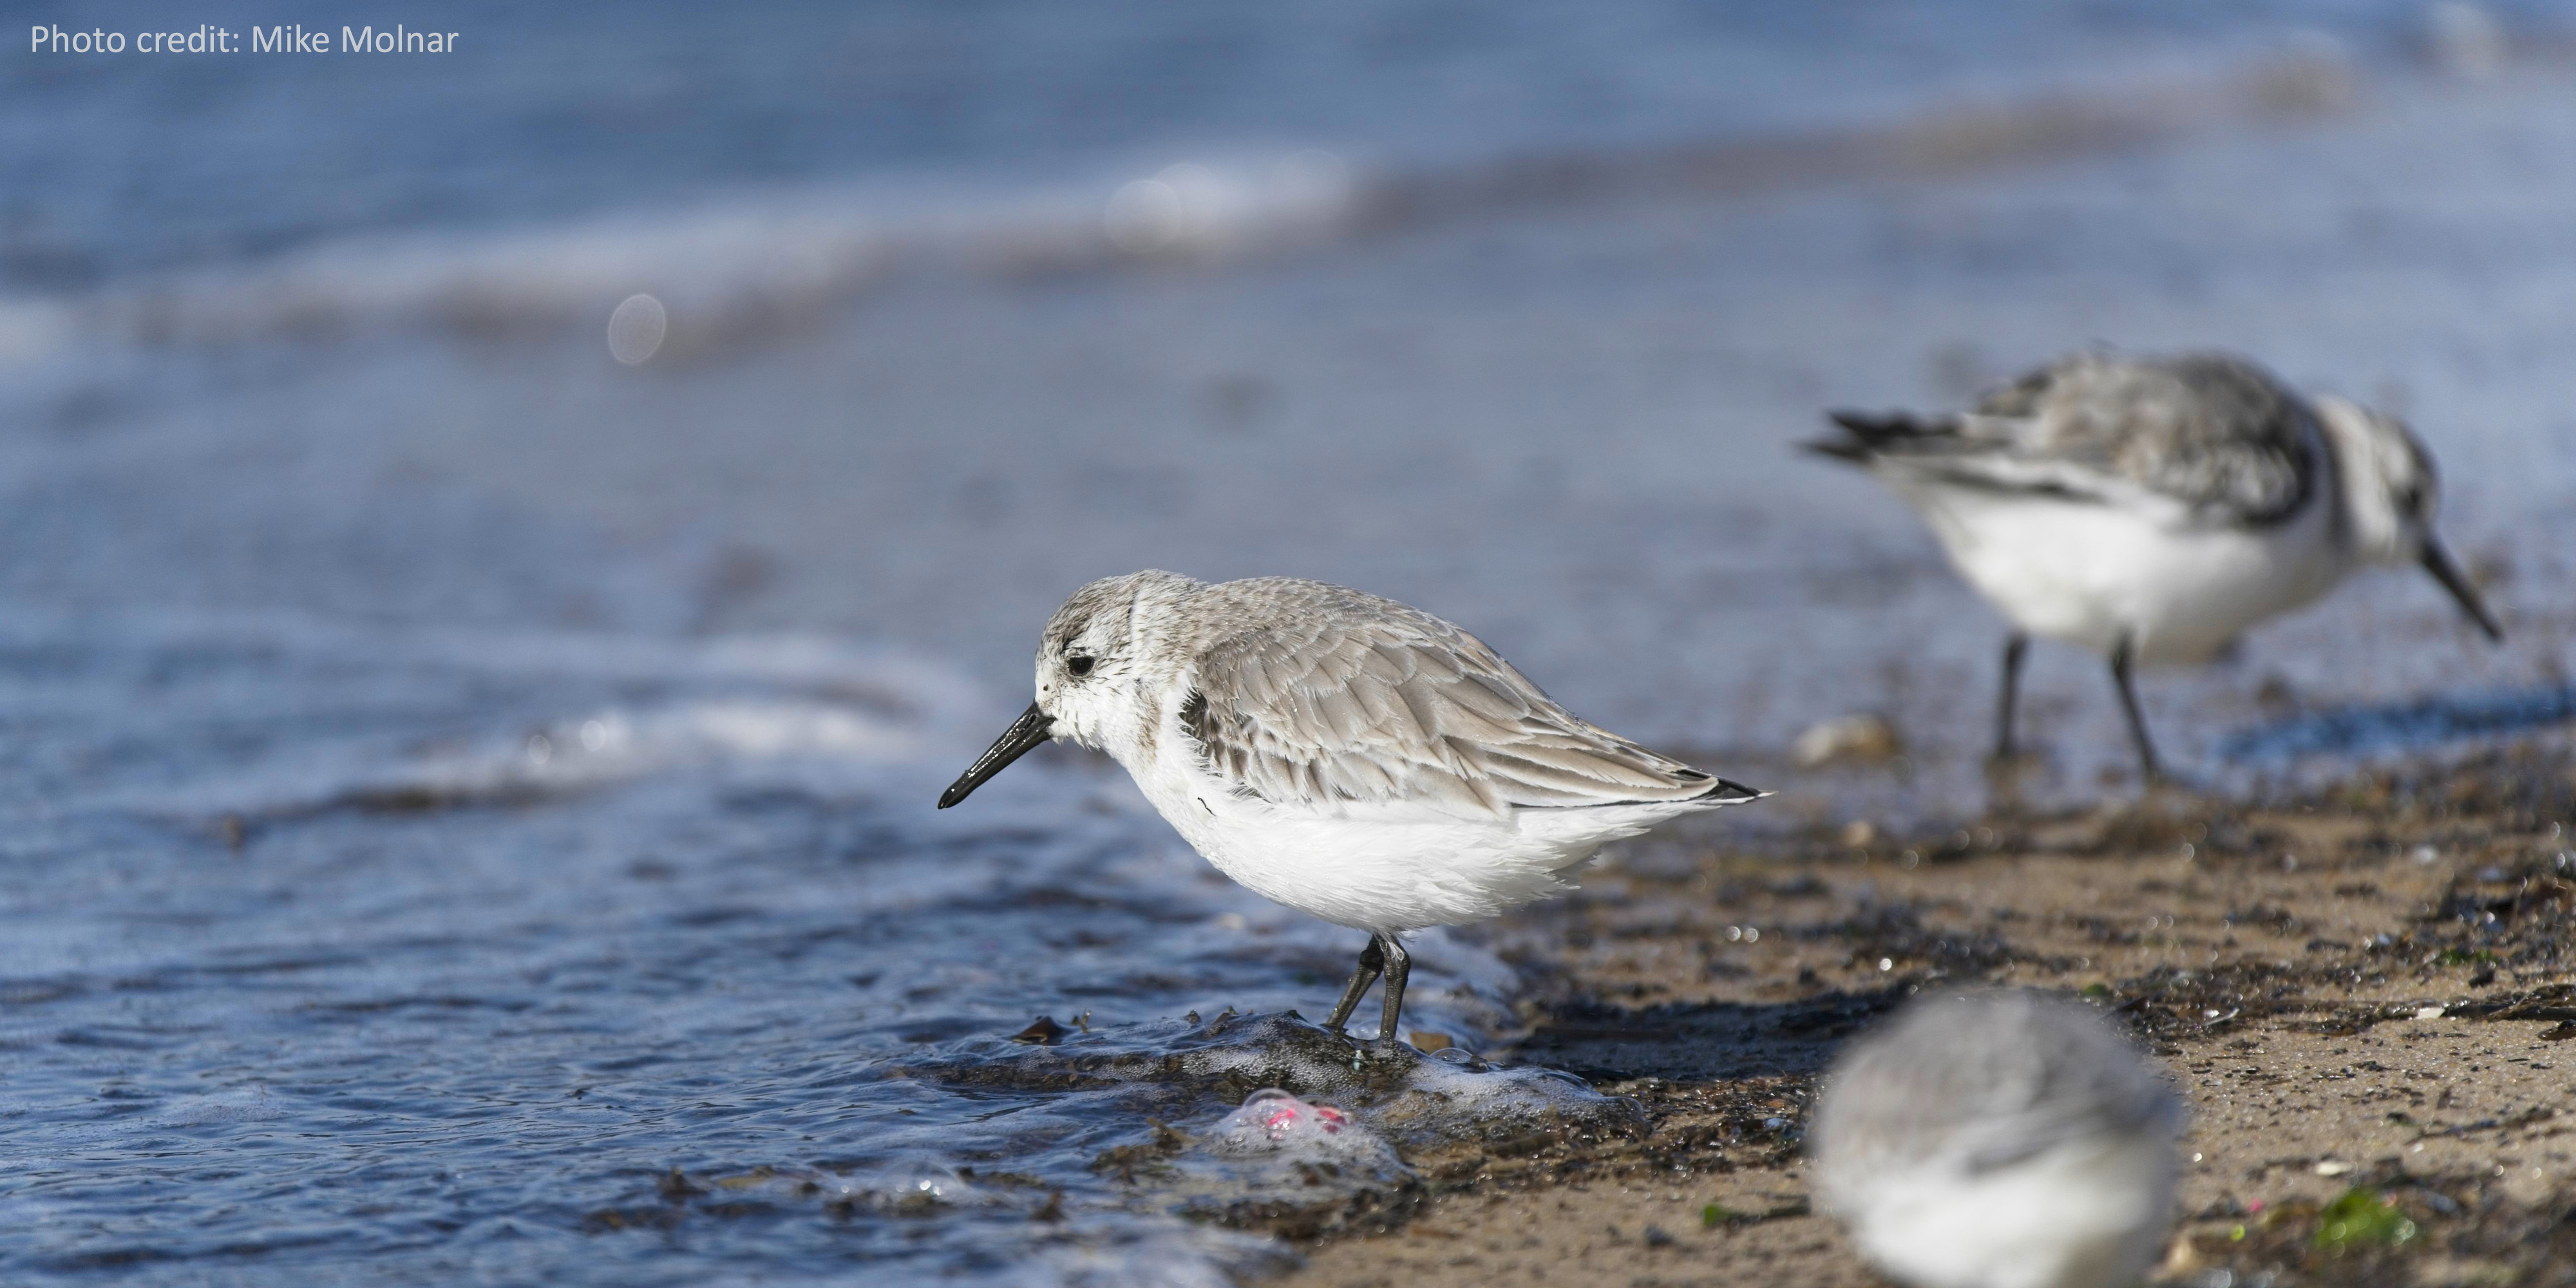 Group of sanderlings on the beach at Cape Henlopen State Park near Lewes, Delaware